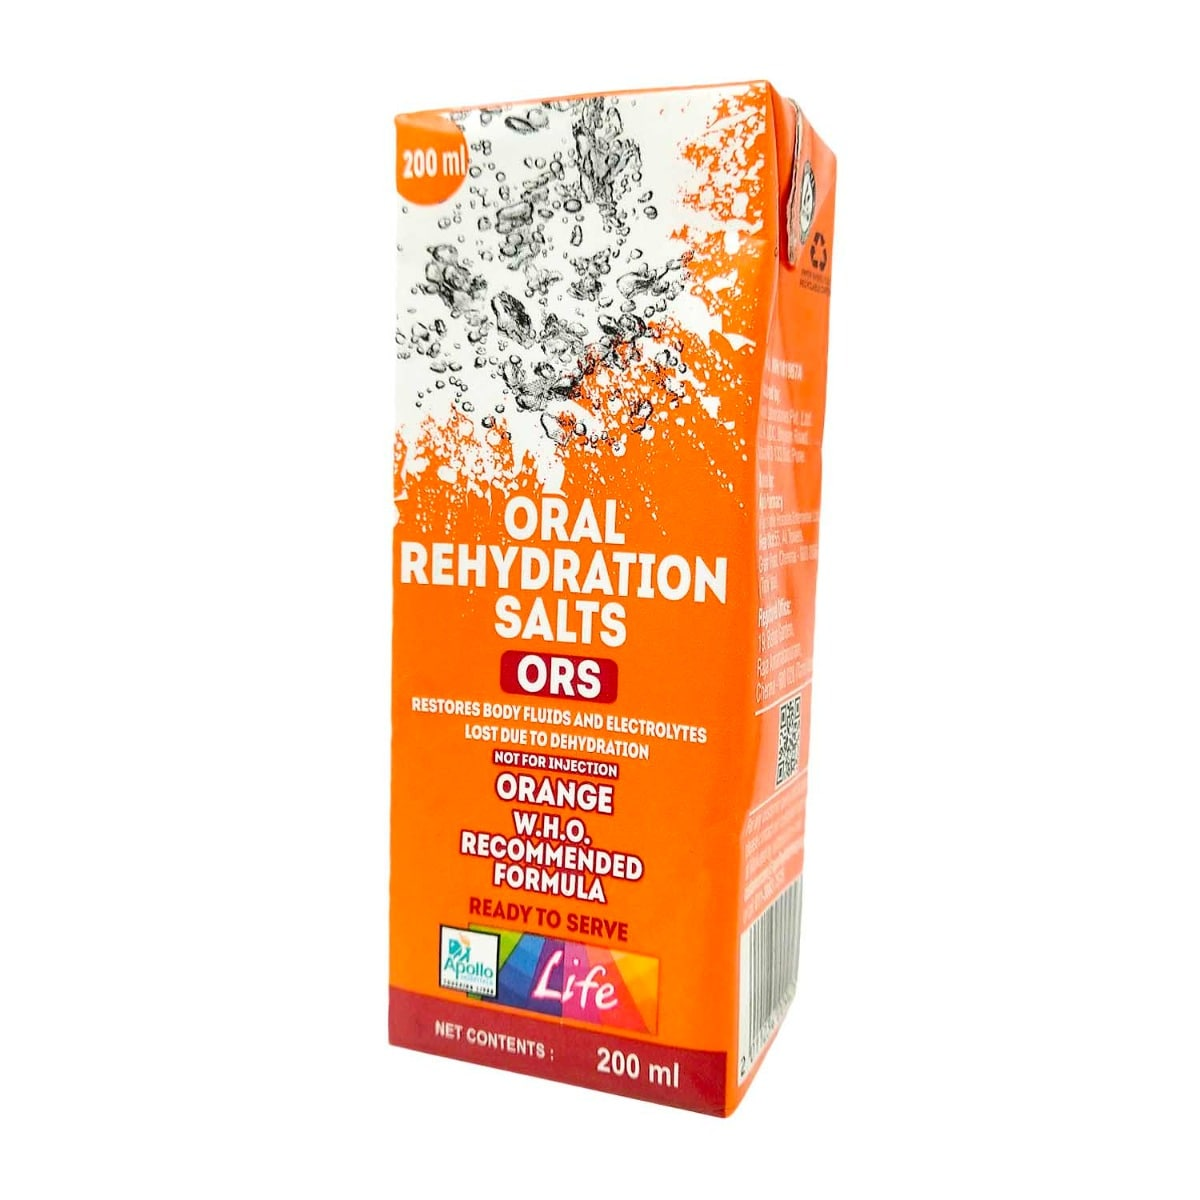 Apollo Pharmacy Orange Flavour ORS Drink, 200 ml, Pack of 1